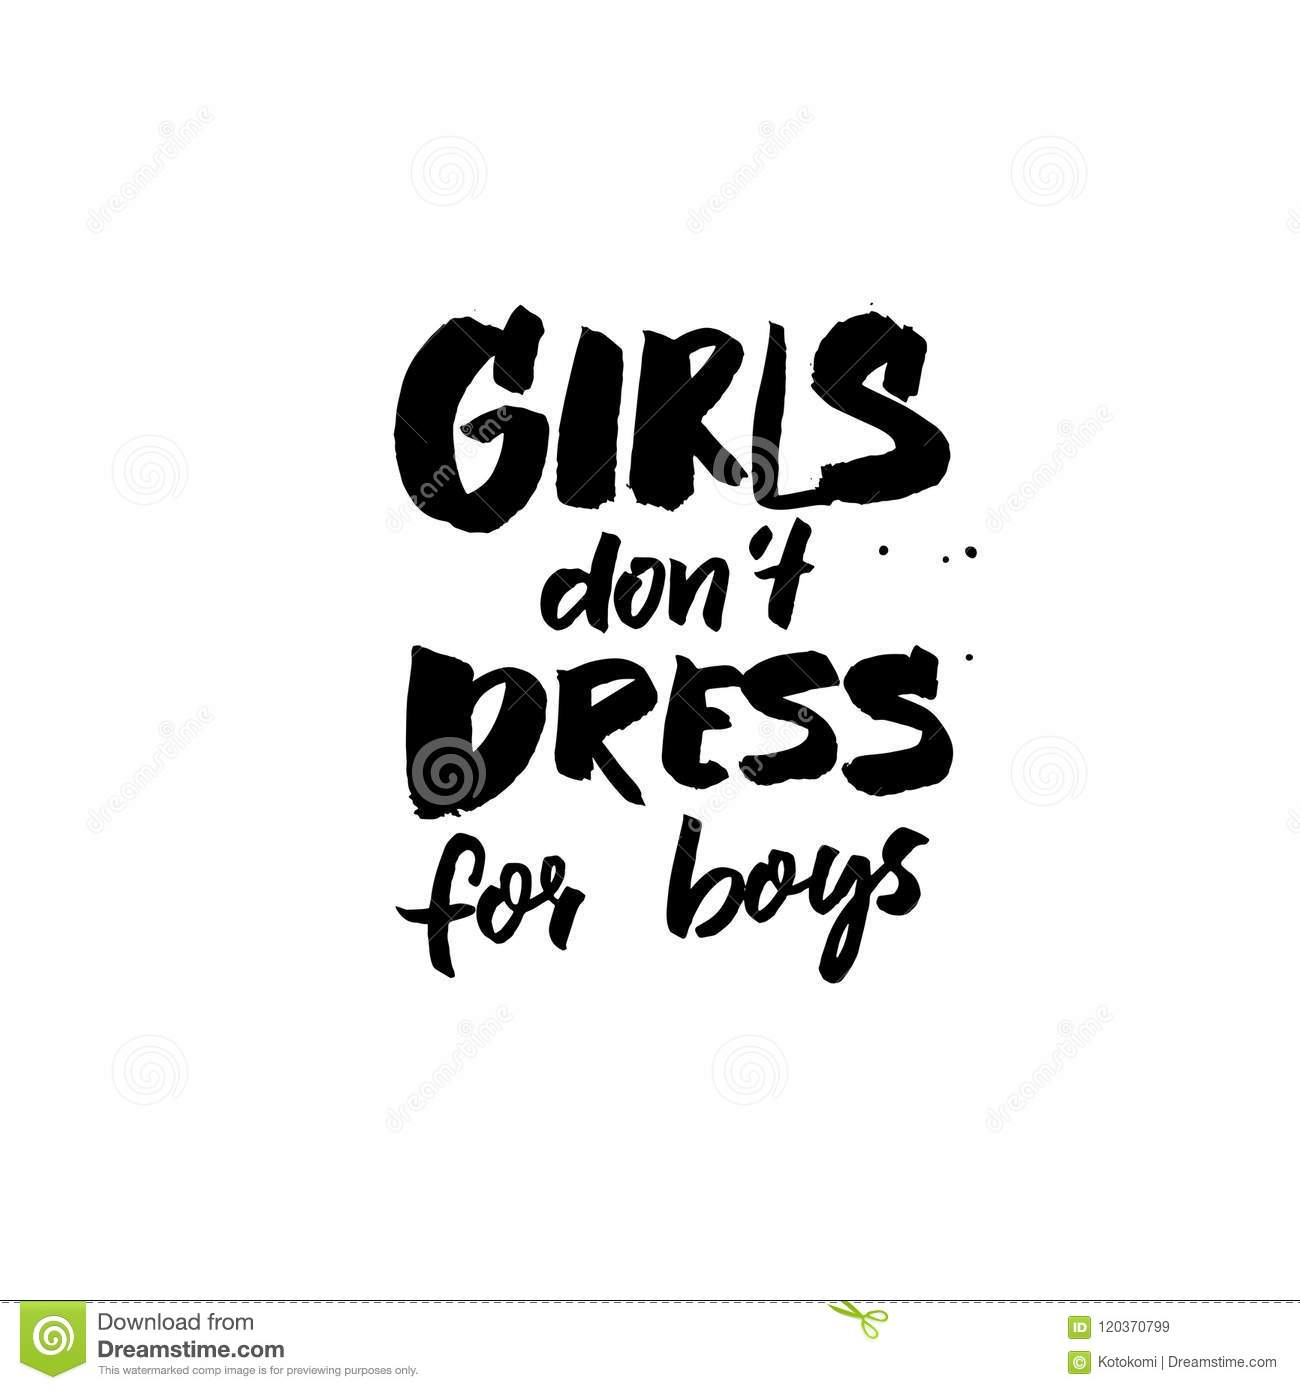 To acquire Quotes Inspirational for girls about boys pictures trends